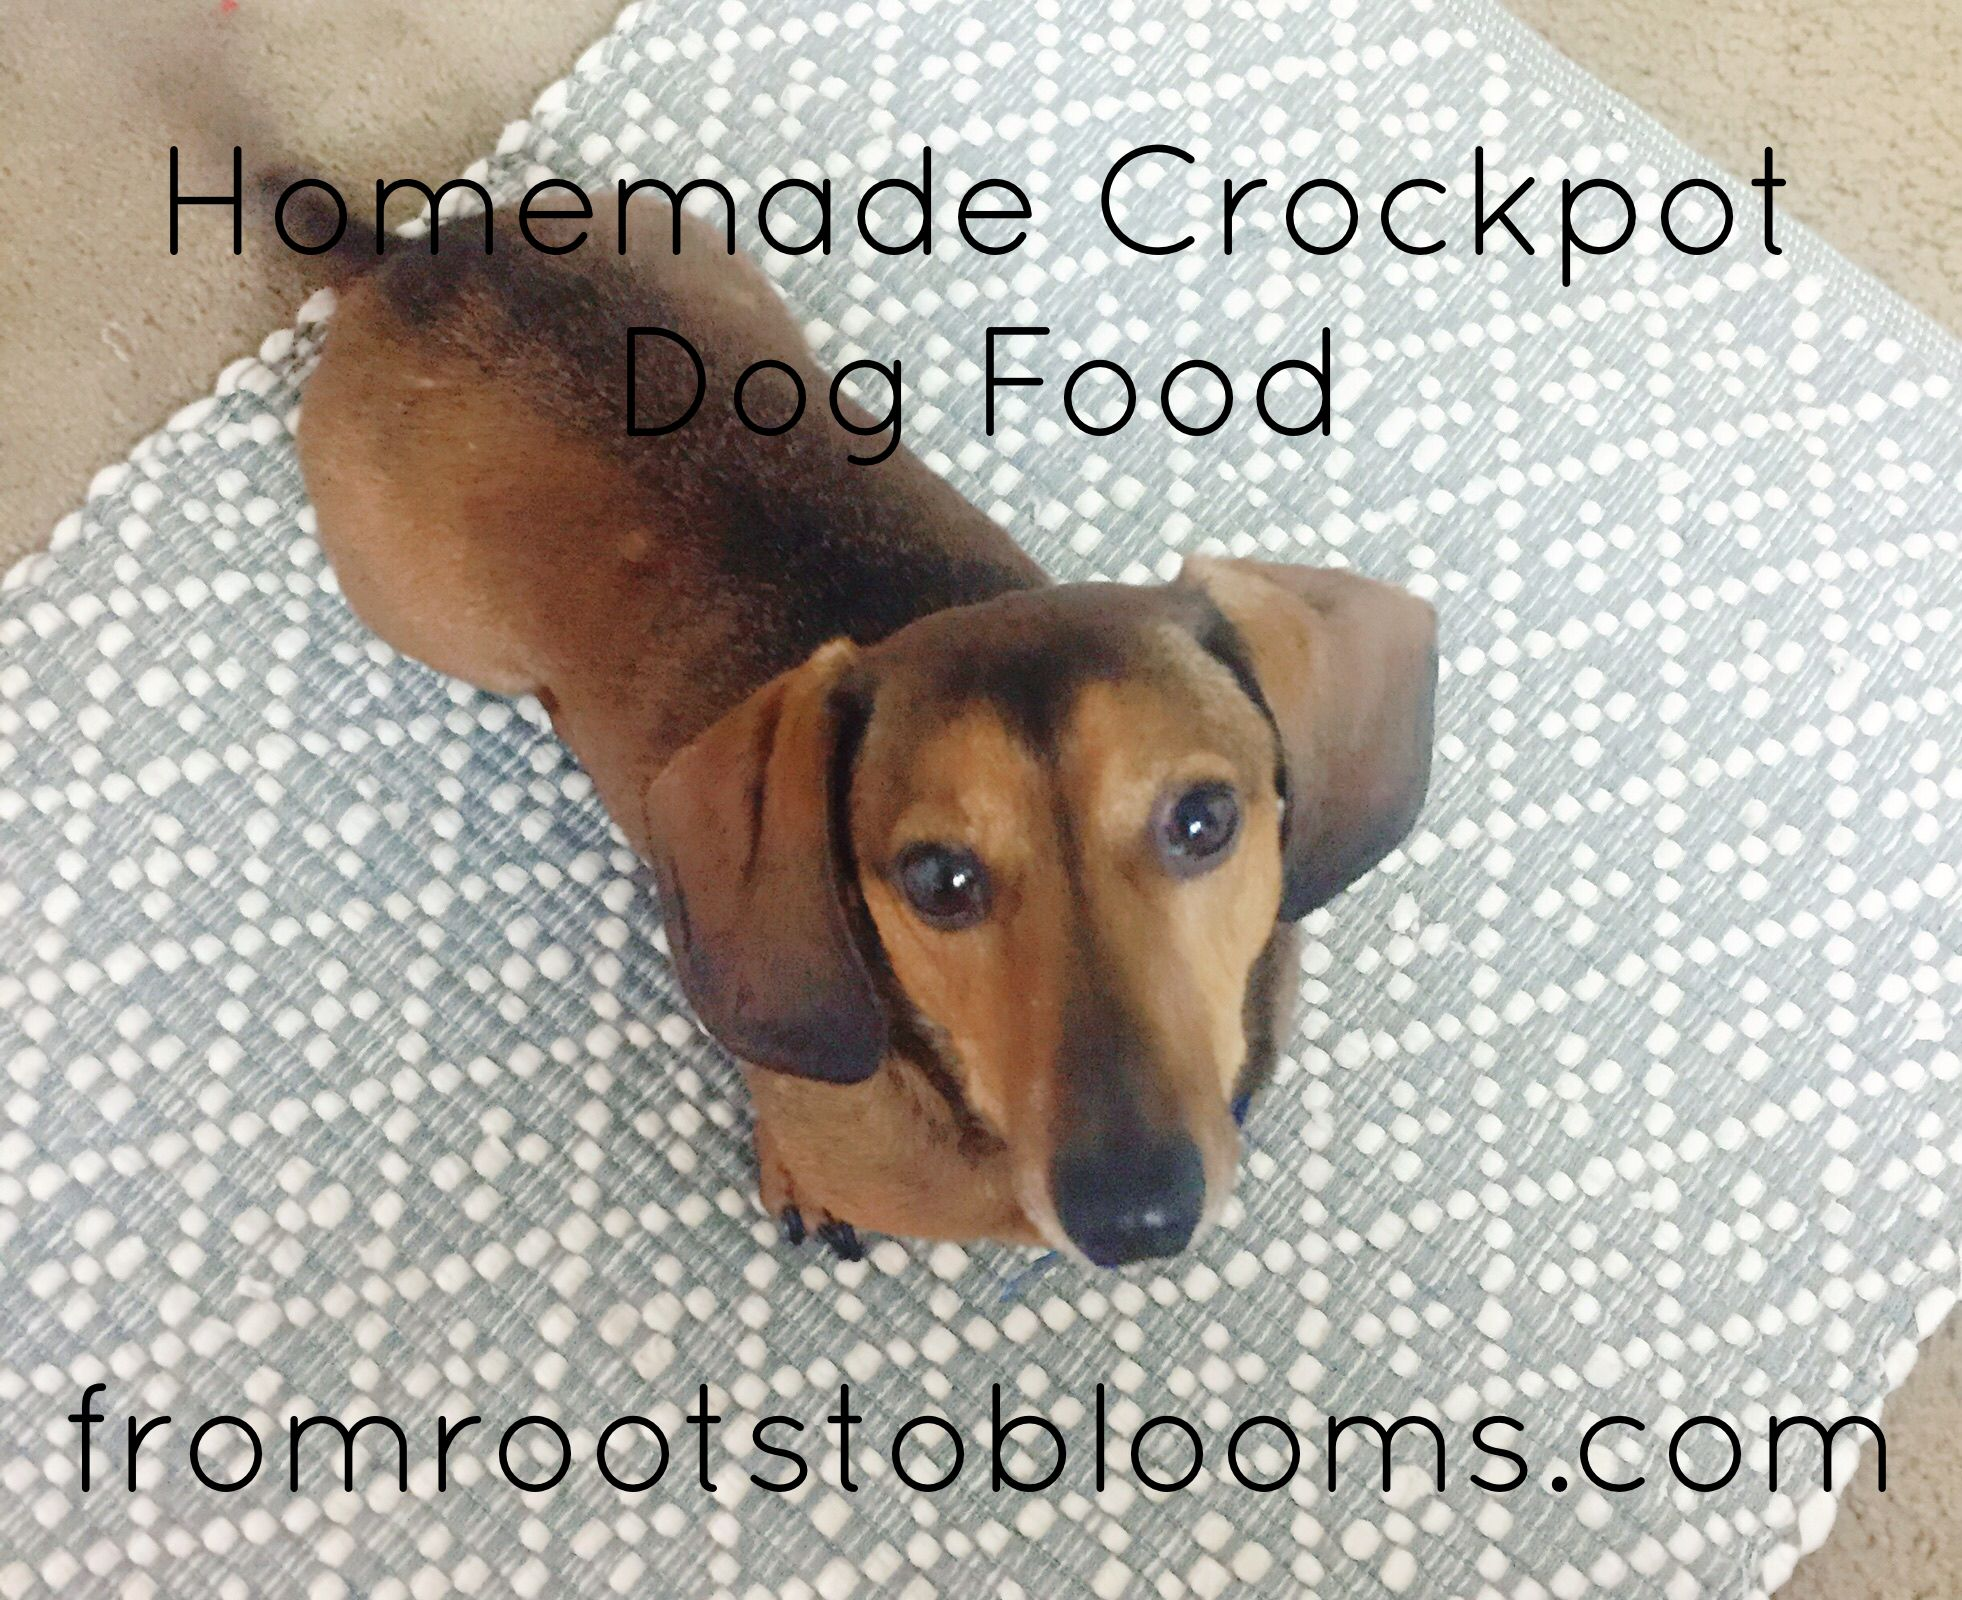 Homemade Crockpot Dog Food Dogfood Homemade Crockpot Dog Food